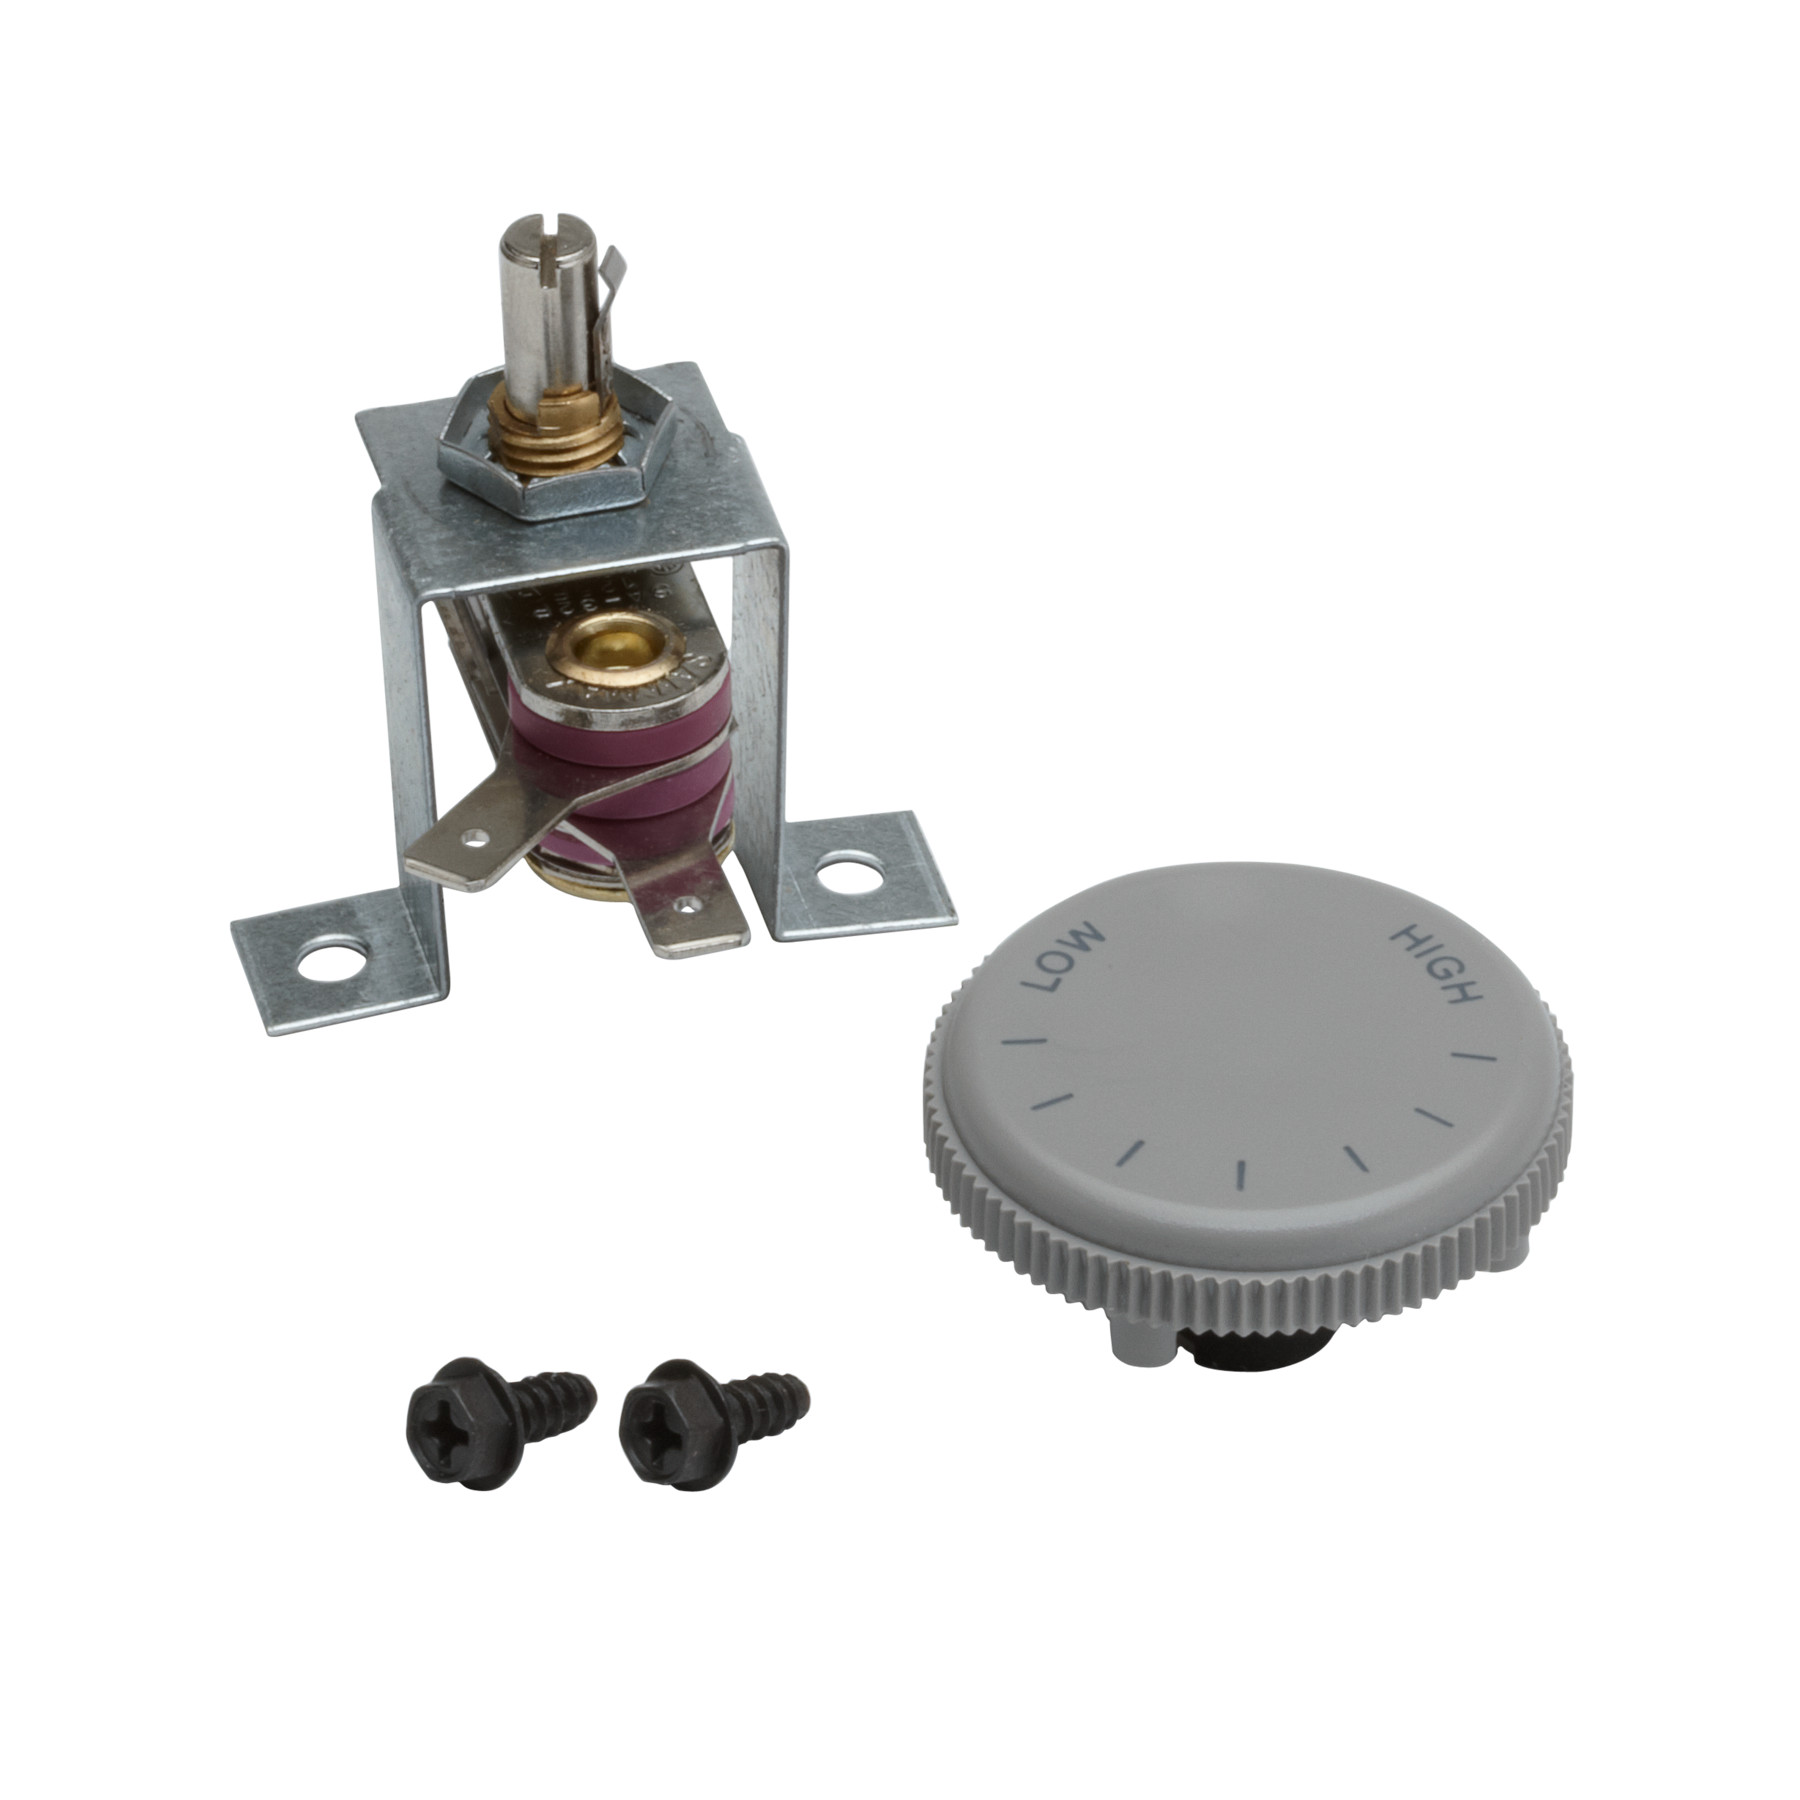 Broan® Thermostat Kit. Rated 120/240VAC, 12.5 amps. Temperature range 40° – 125° F